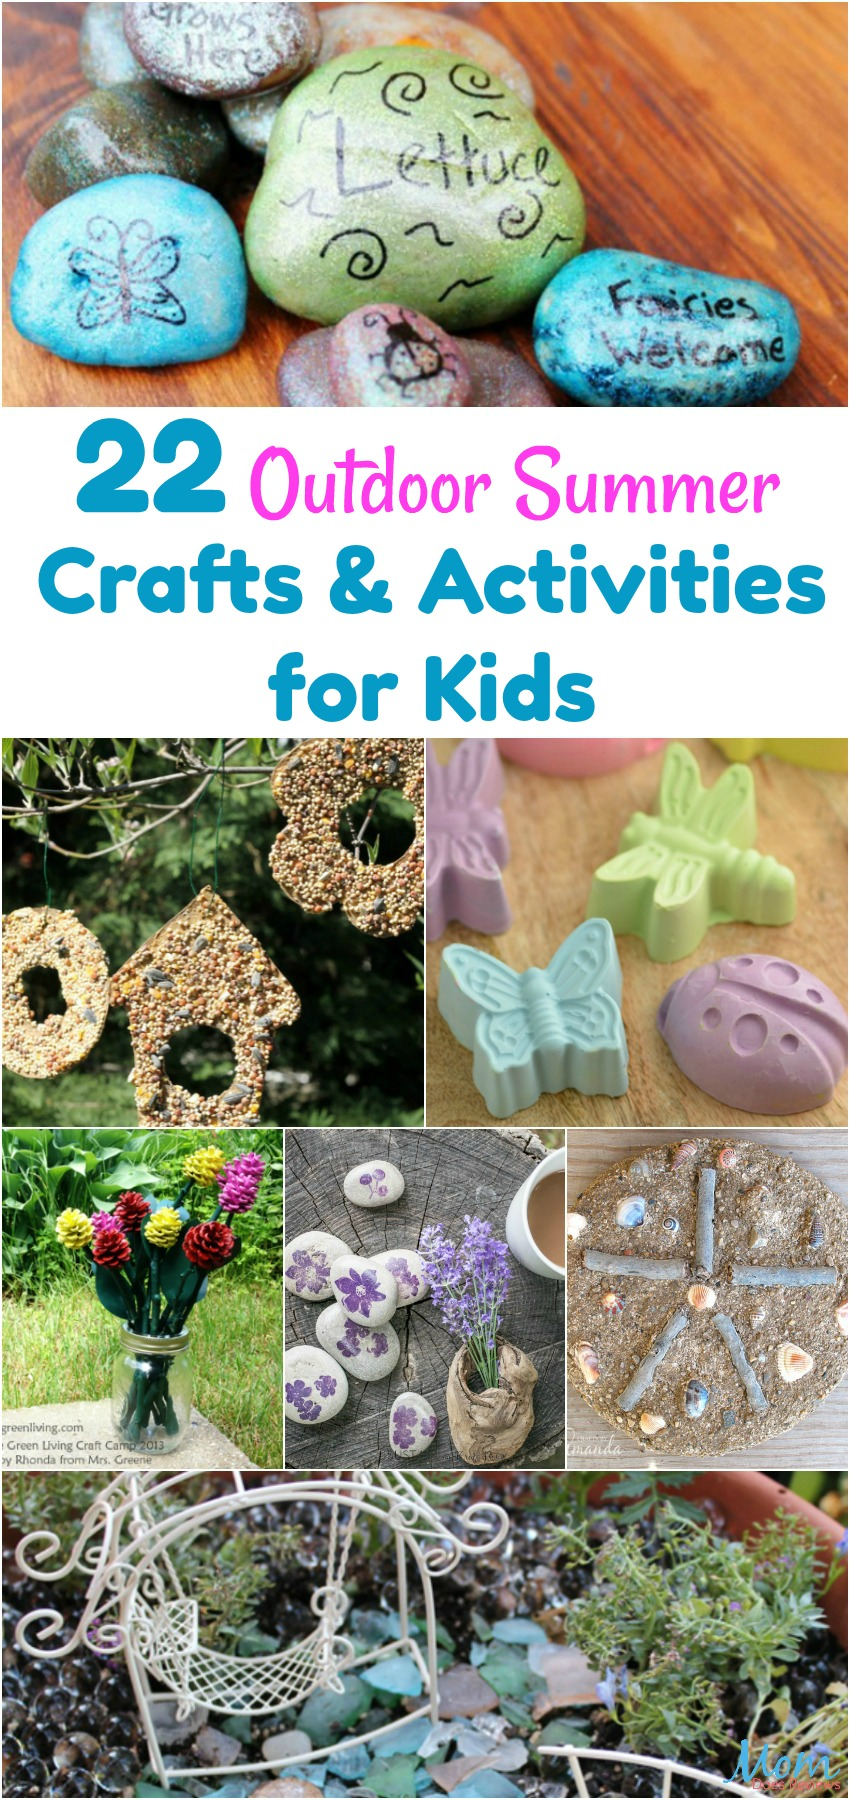 22 Outdoor Summer Crafts & Activities for Kids vertical banner